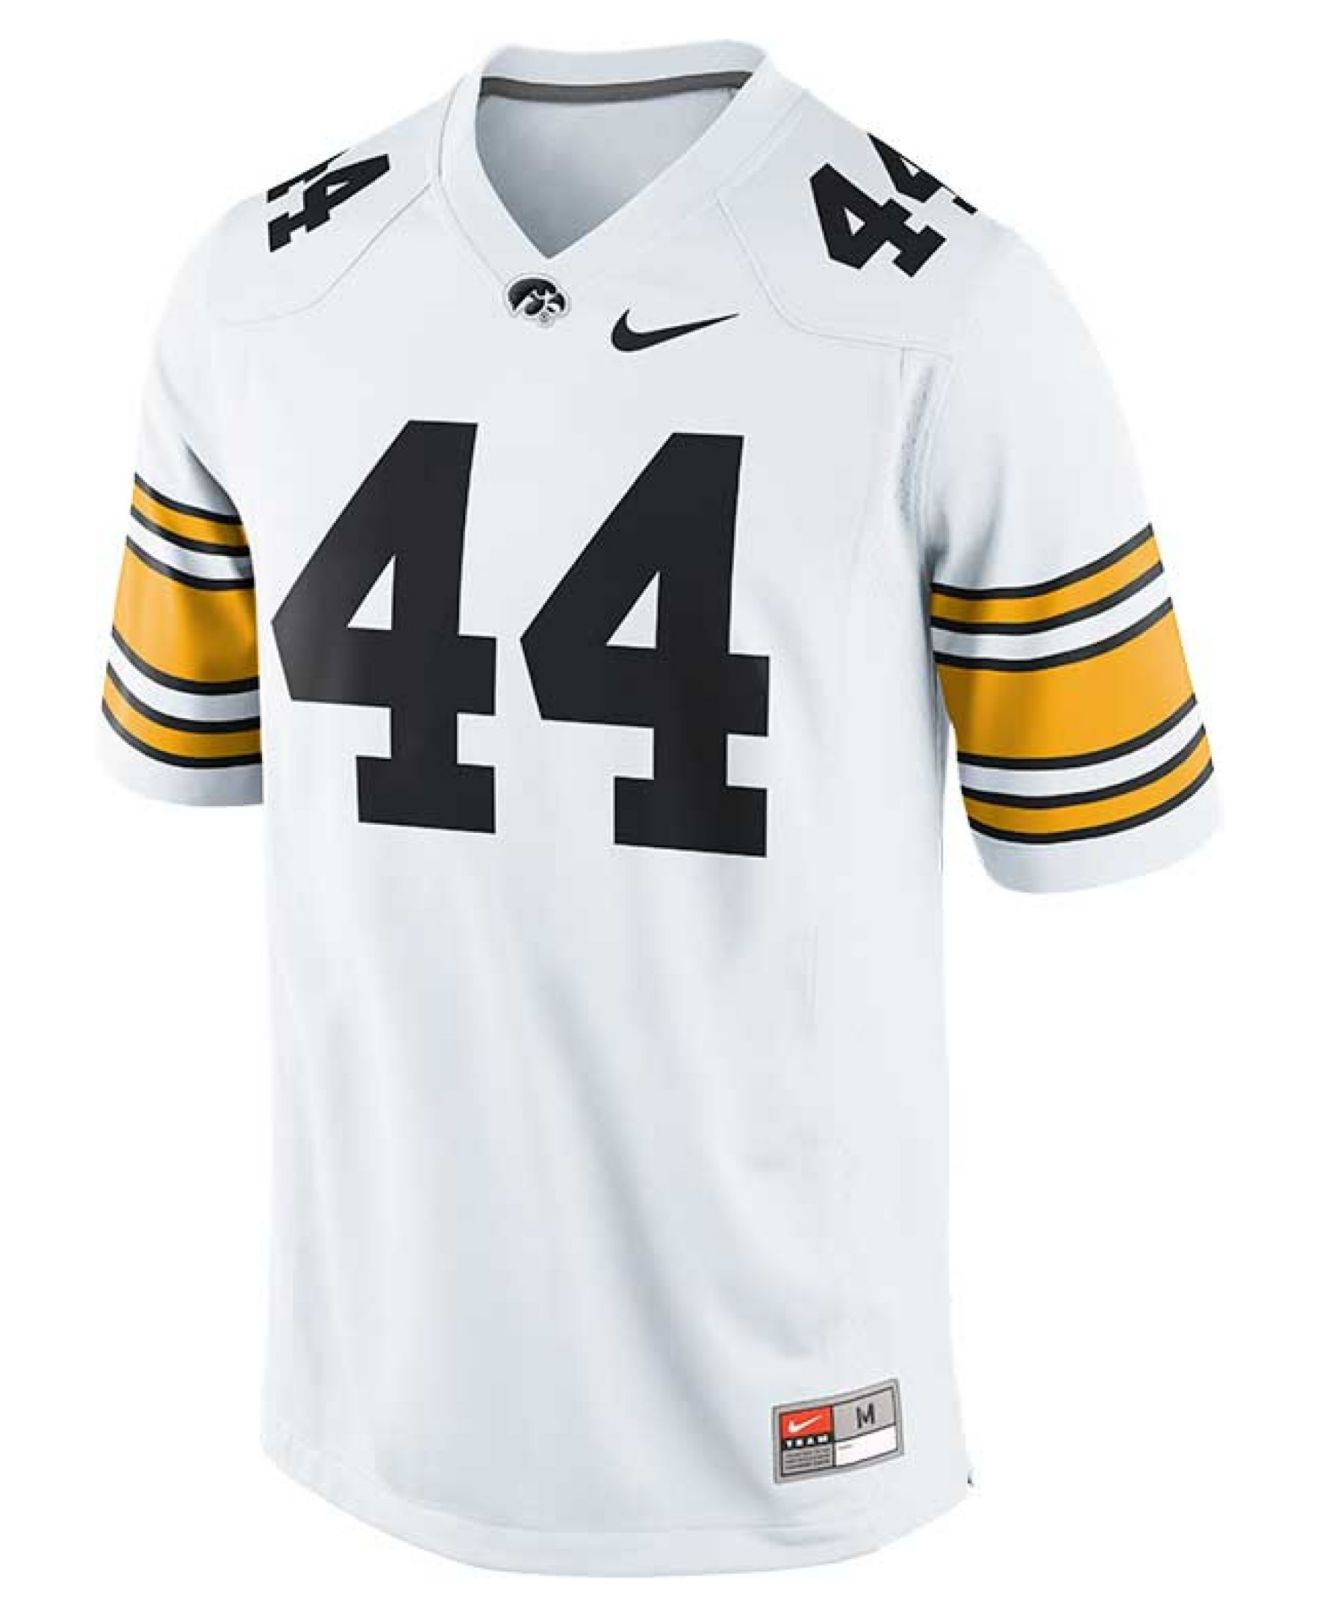 buy online c5c56 a3f37 Nike White Men'S Iowa Hawkeyes Replica Football Game Jersey for men